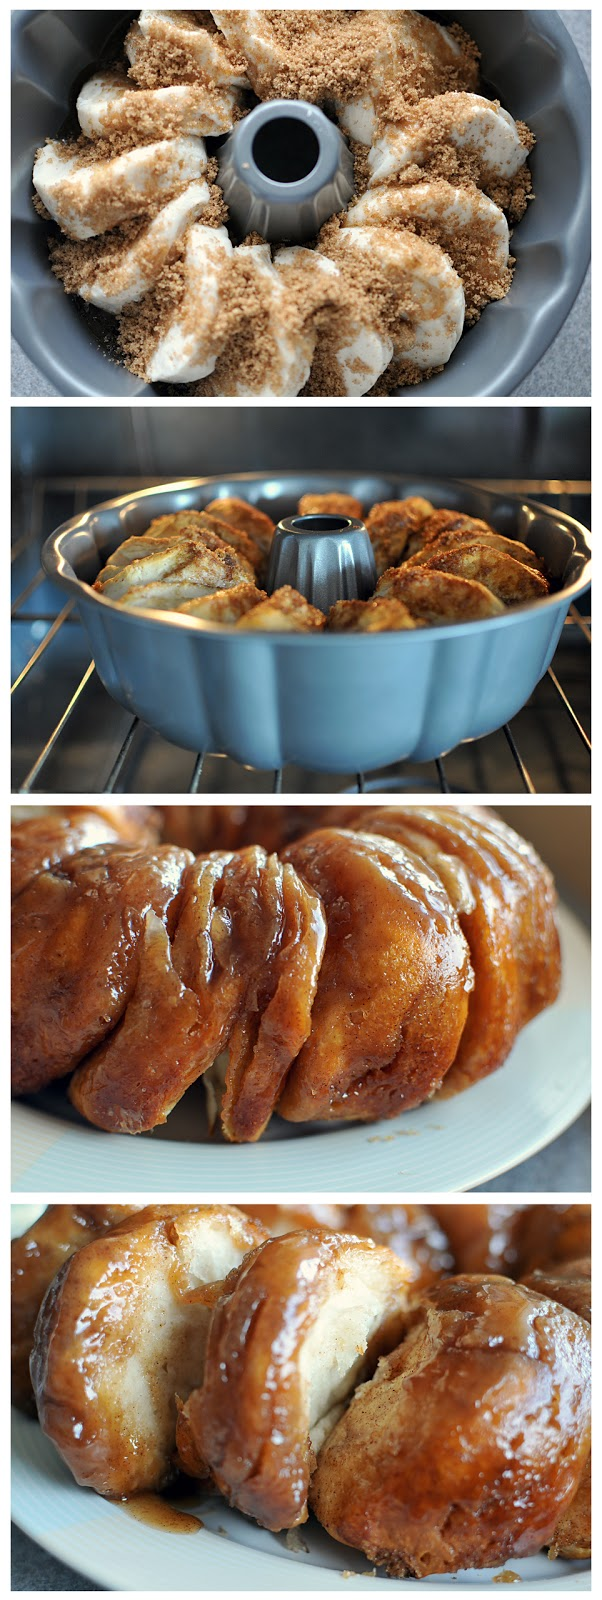 cinnamon rolls | Make Recipes Now